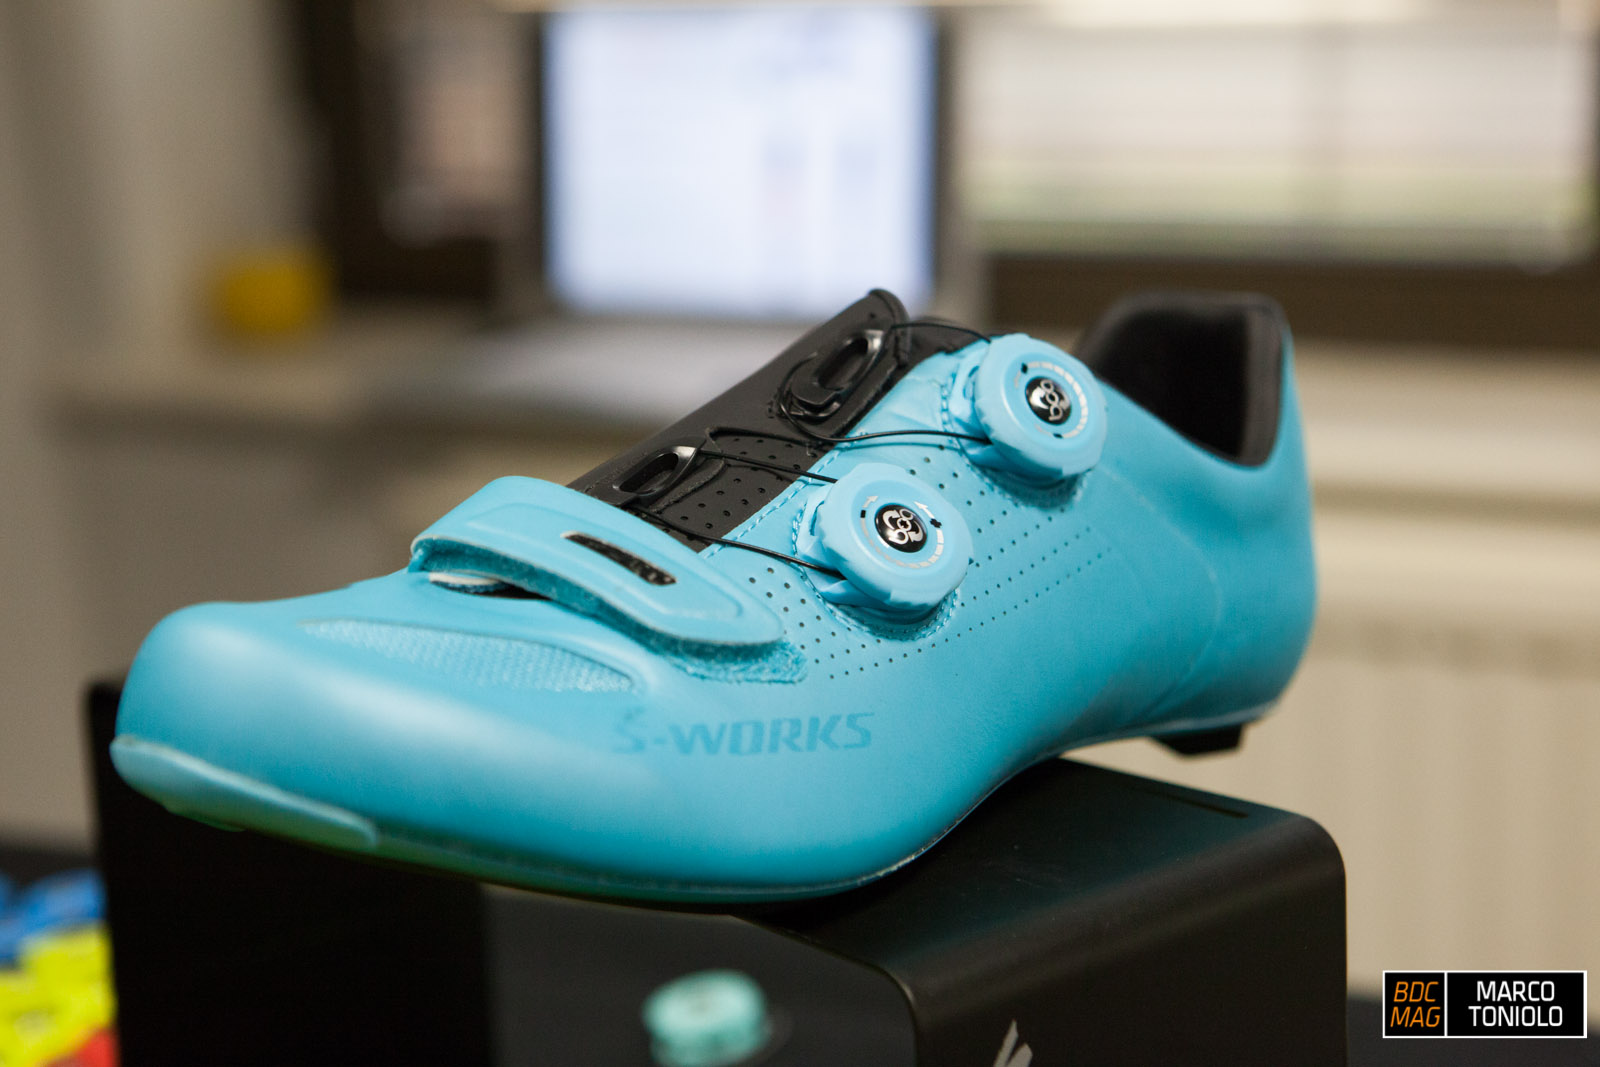 fad7127e30169 New SWorks road shoes - nice! (marketing BS apart) - Weight Weenies